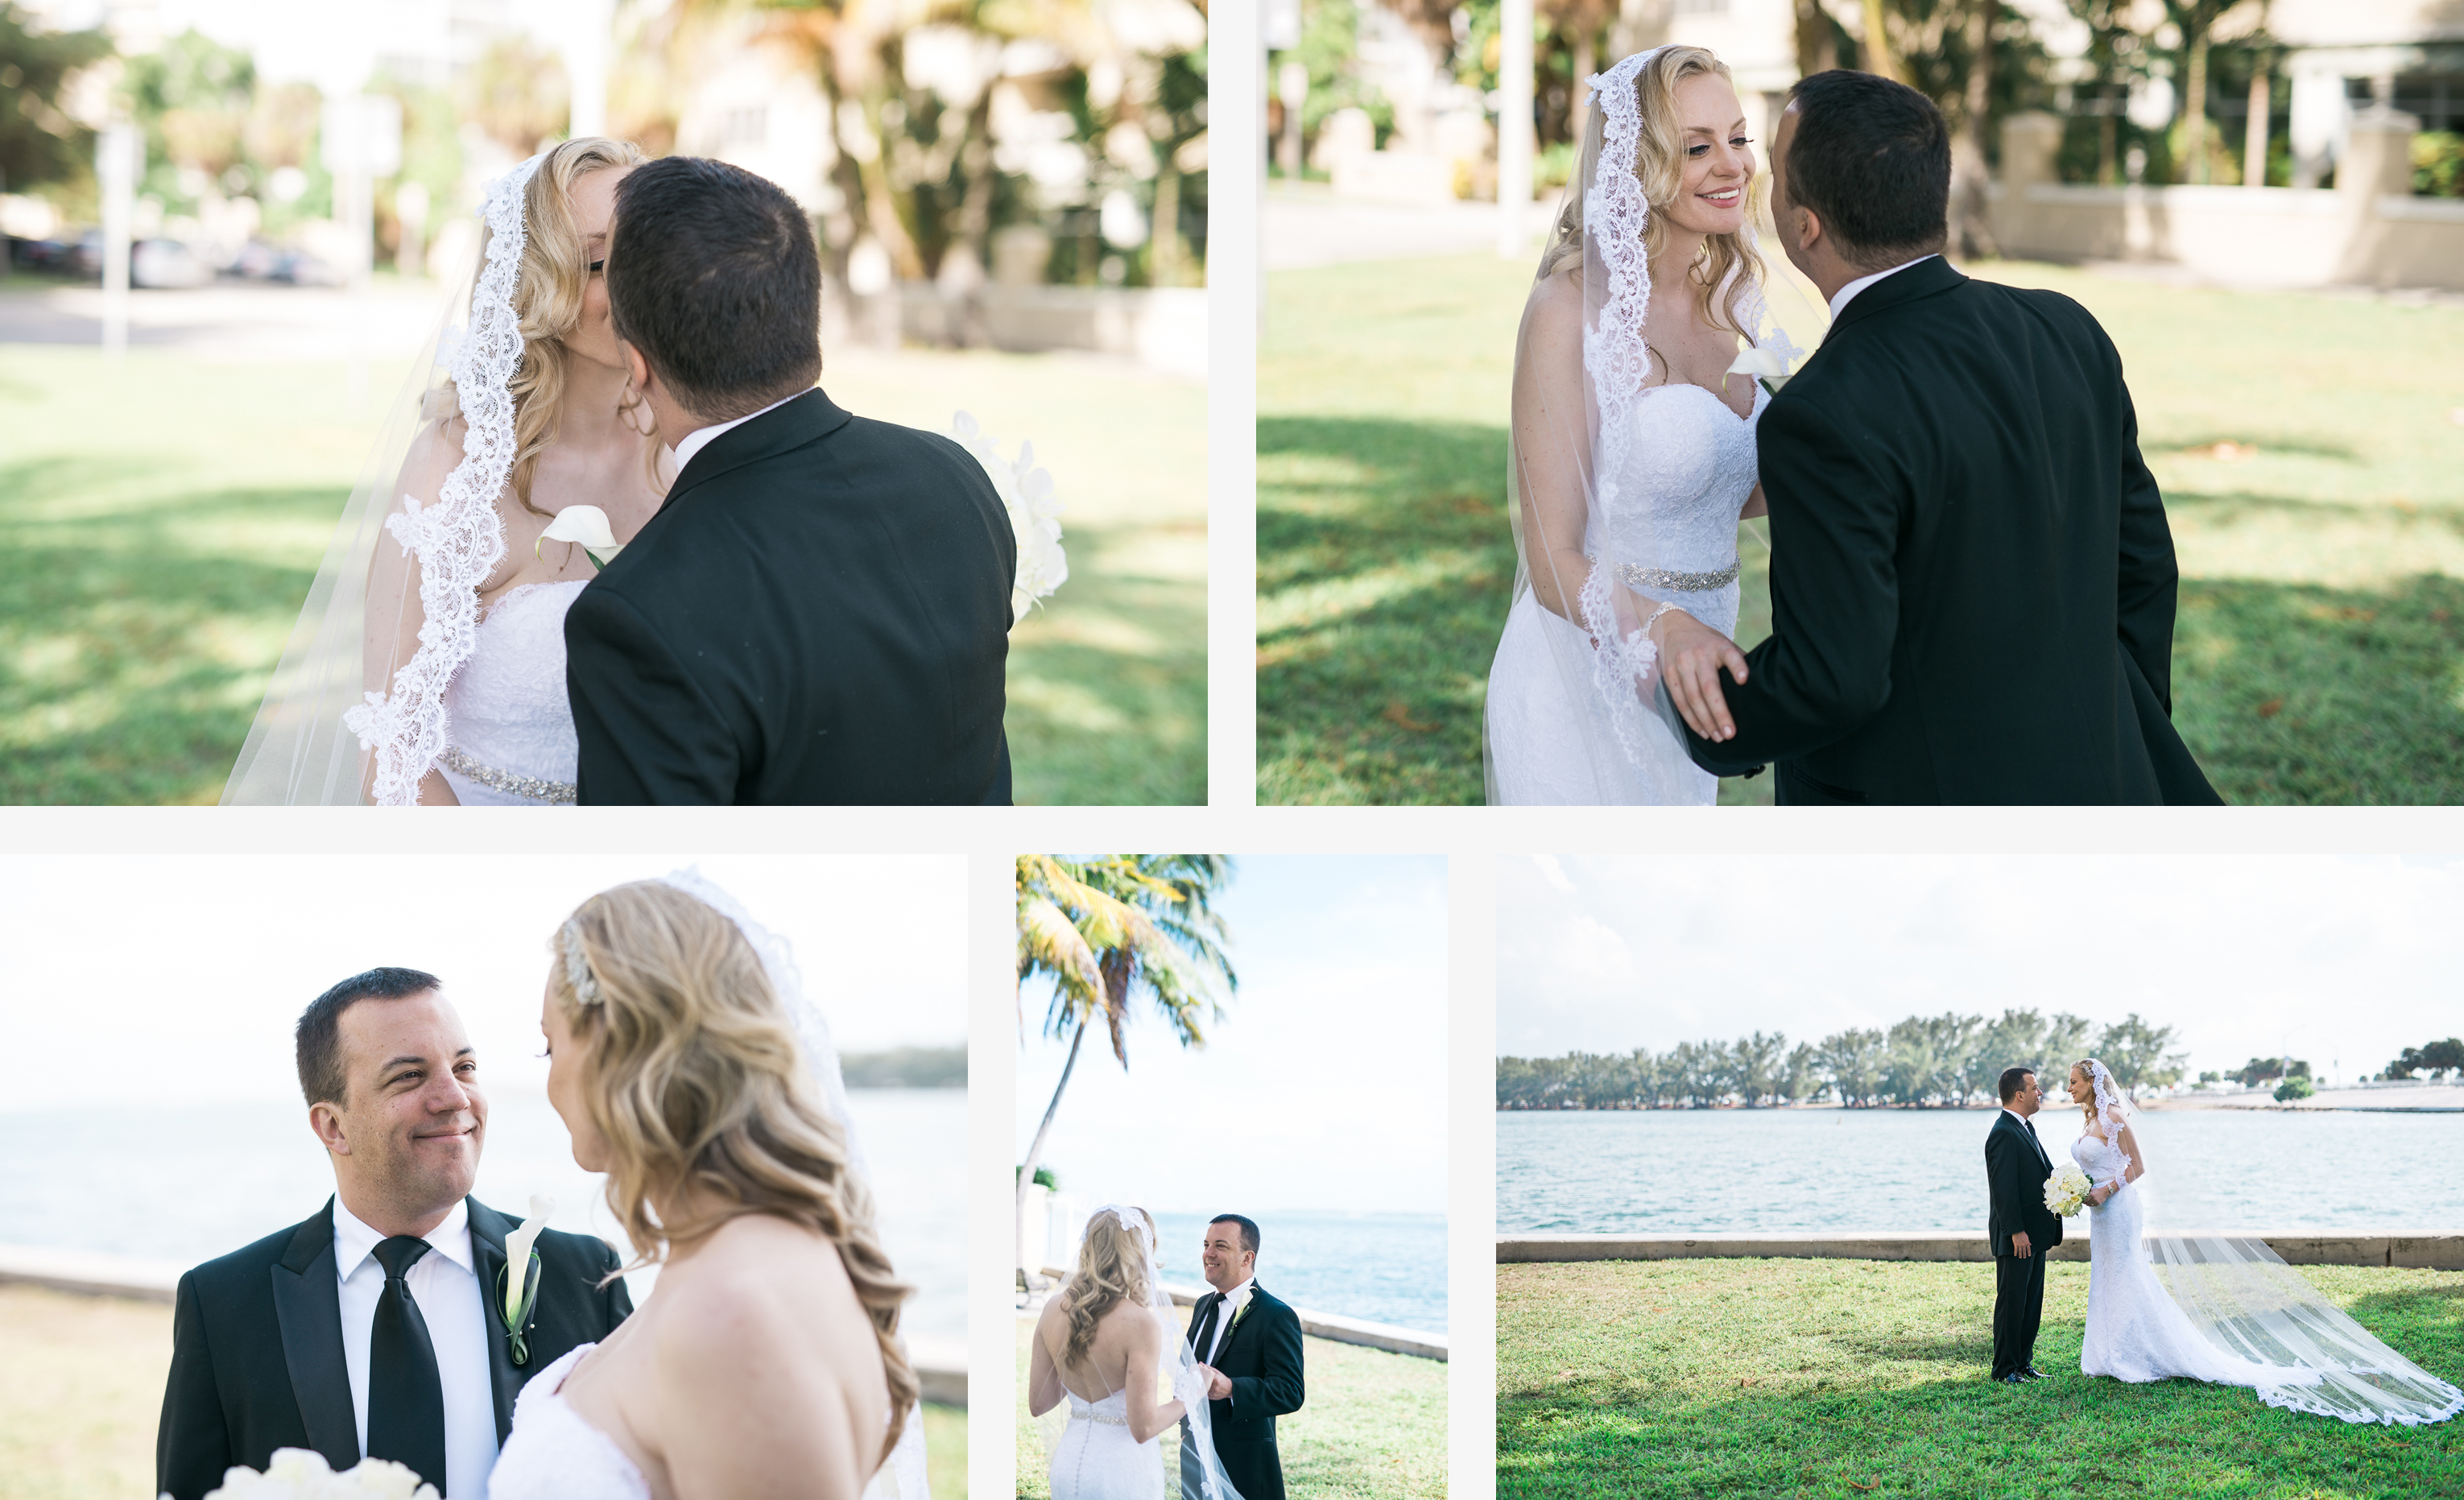 brandwold.se-miami-wedding-fortlauderdale-26